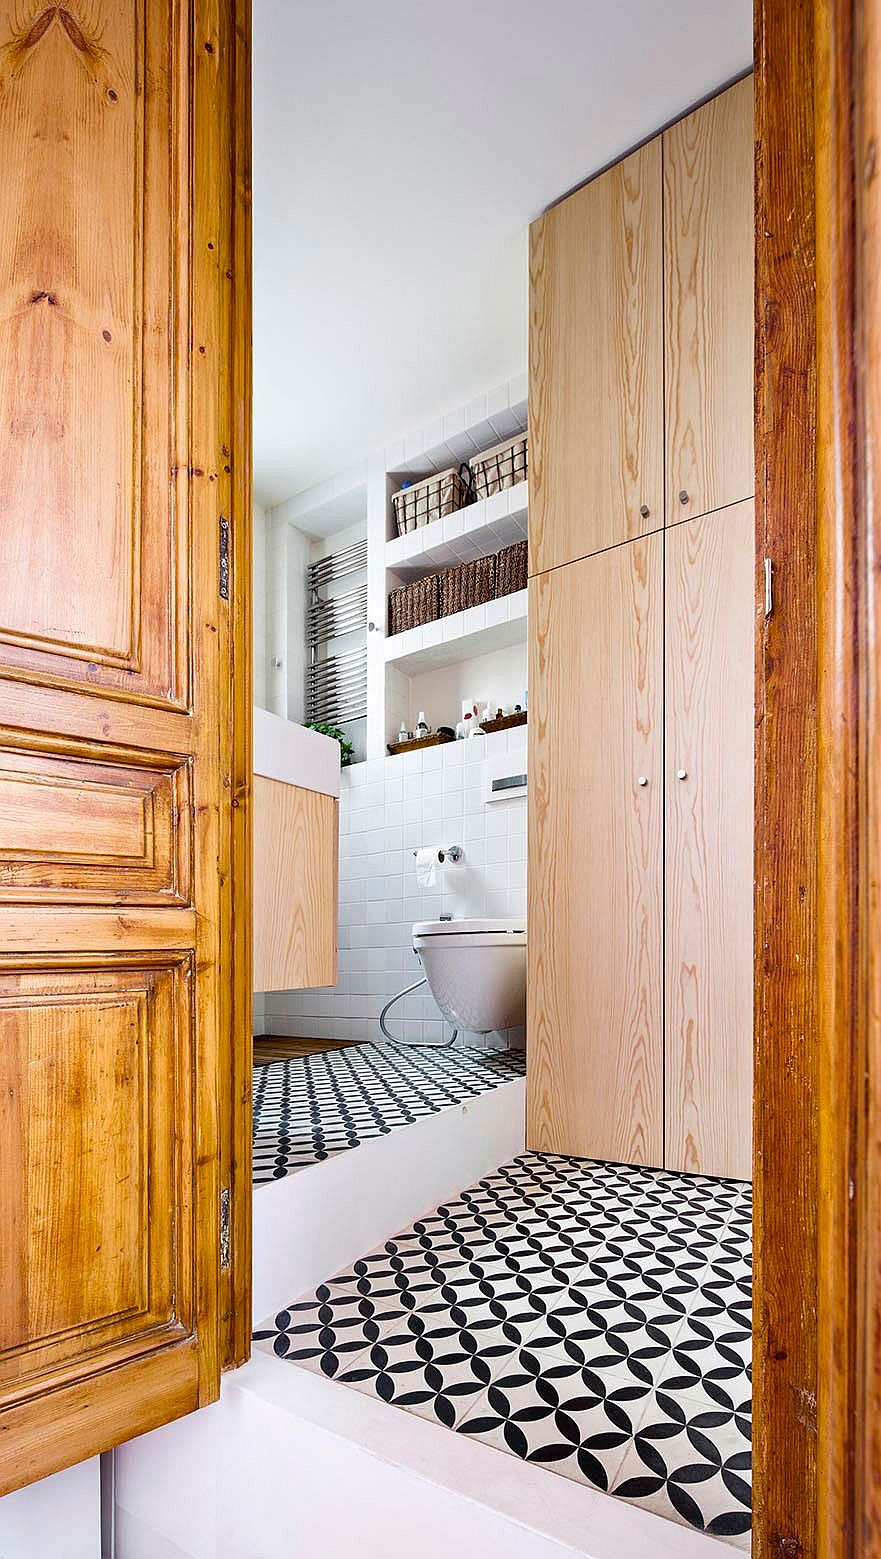 Snazzy tiles add pattern to the small bathroom